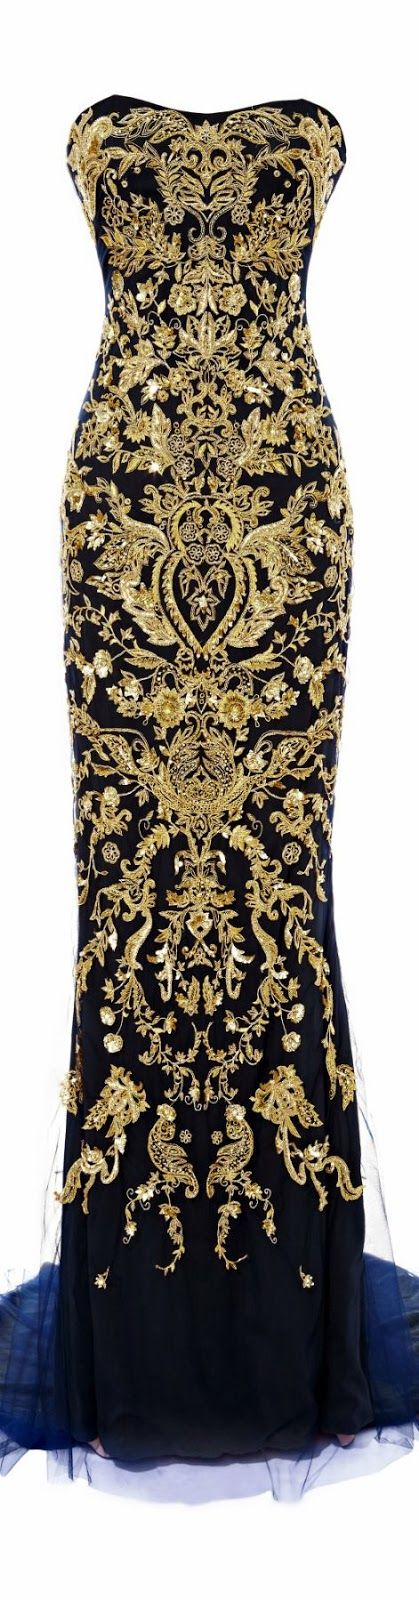 Marchesa Fishtail Gown With Ornament Embroidery. Clearly I need some Marchesa in my wardrobe..: also somewhere to wear it